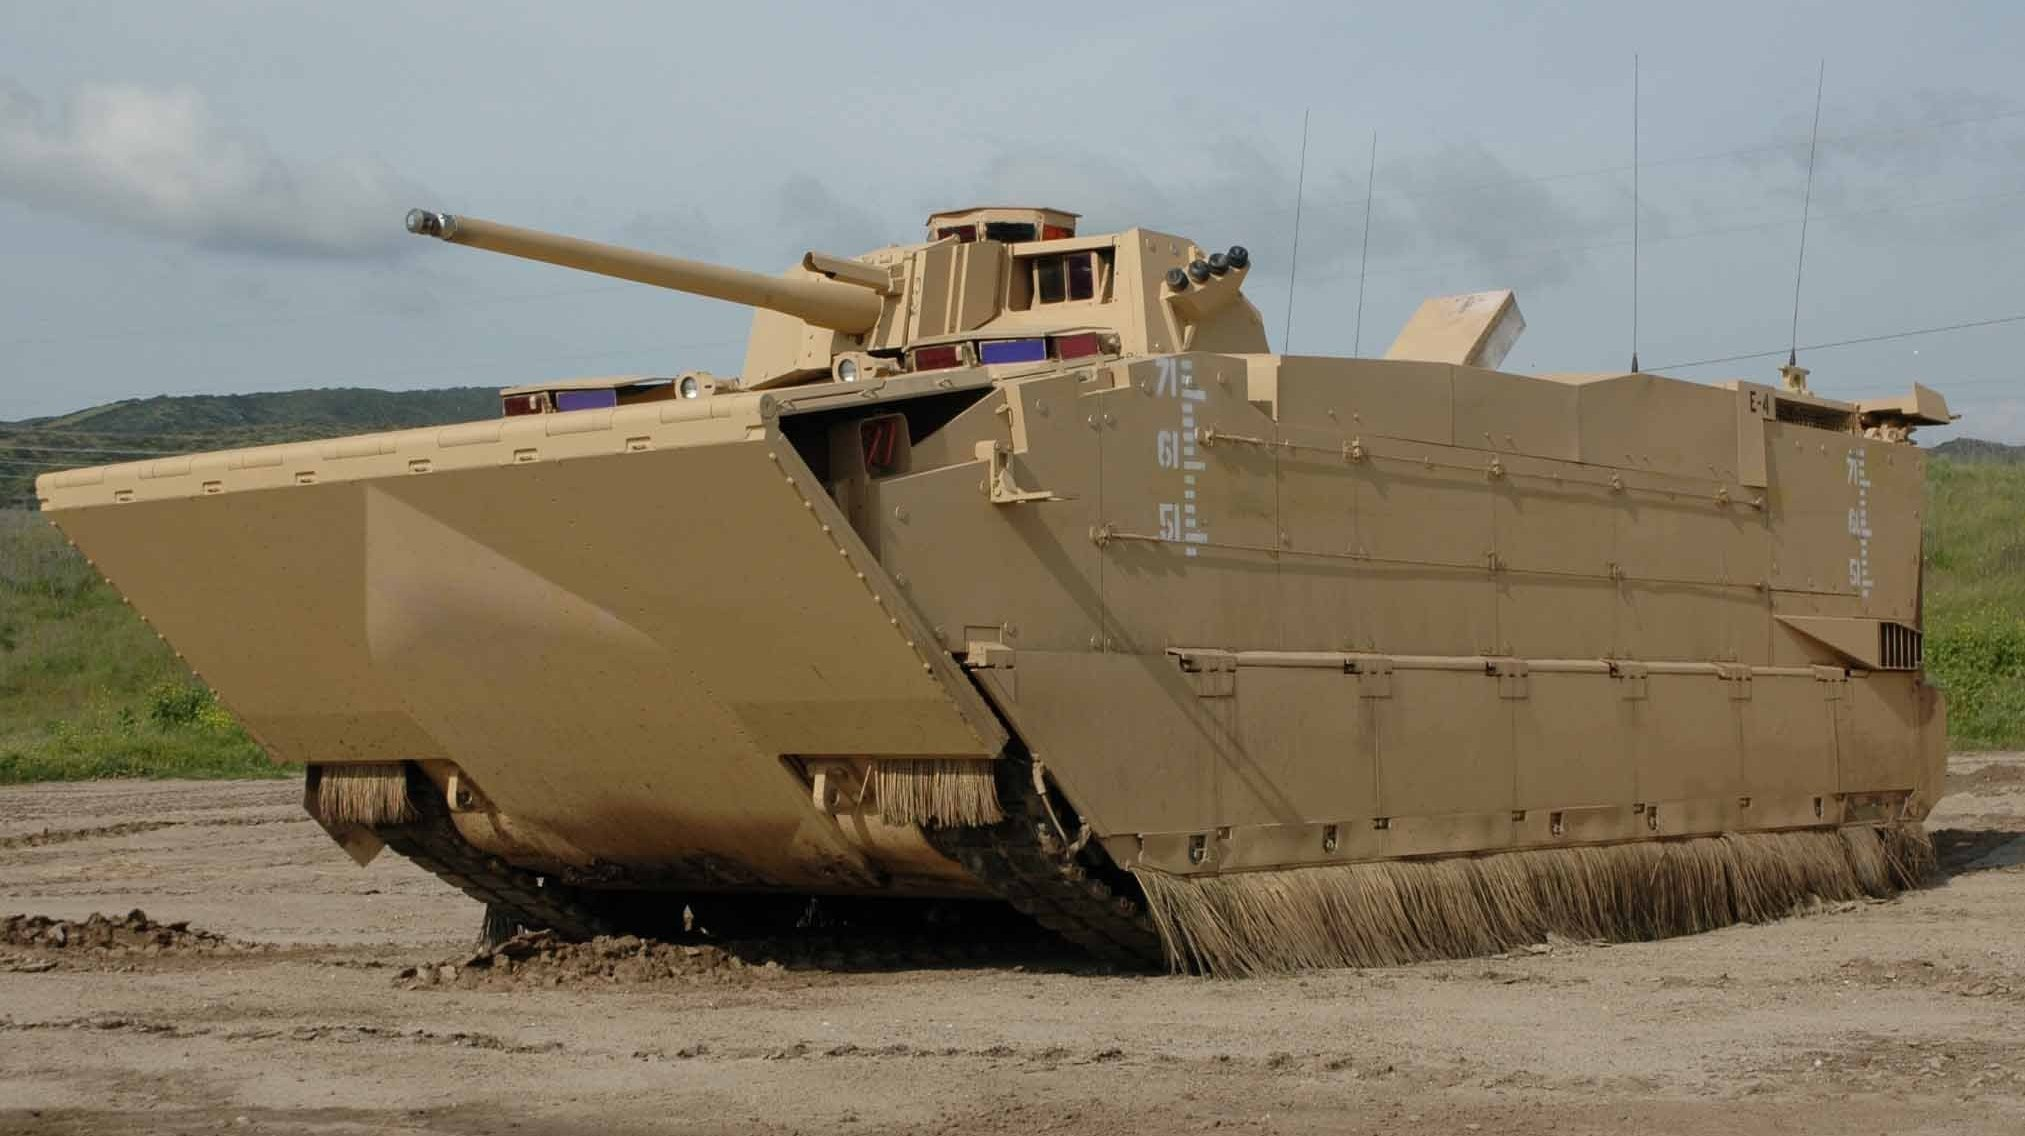 Vehículo anfibio 'Expeditionary Fighting Vehicle' (EFV)